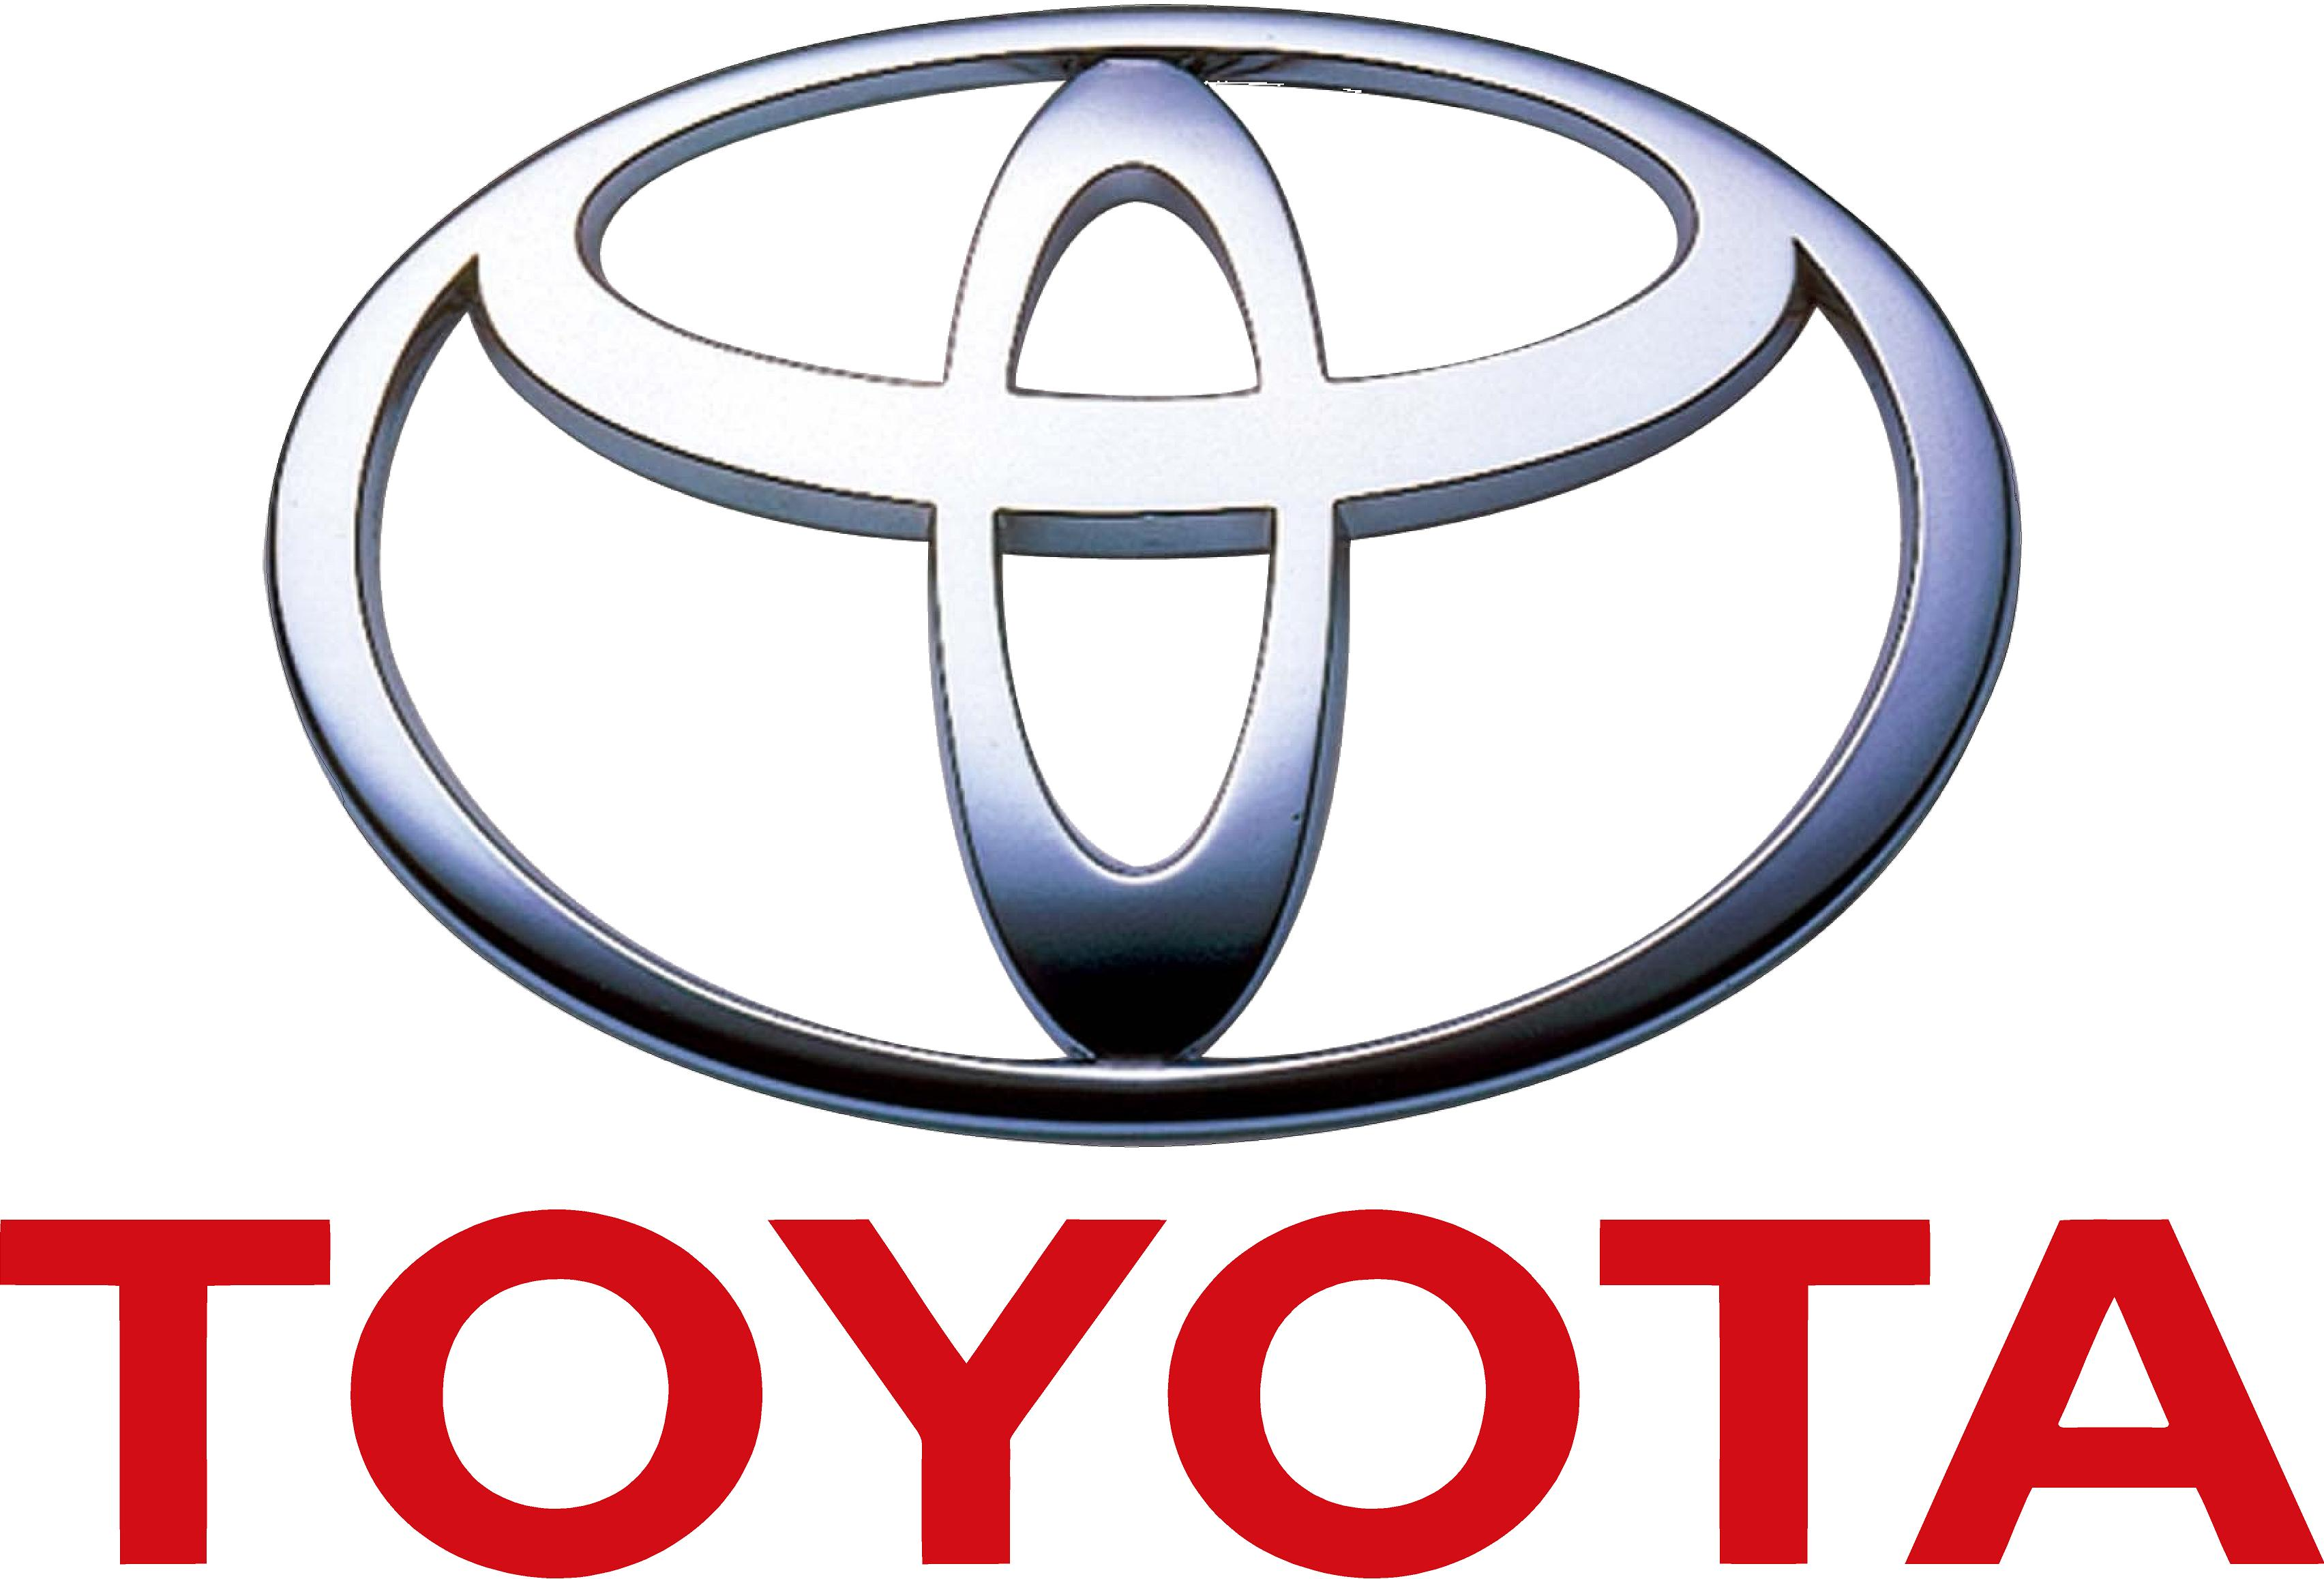 toyota logo transparent png pictures free icons and png backgrounds rh freeiconspng com Hyundai Logo No Background Mercedes Logo No Background